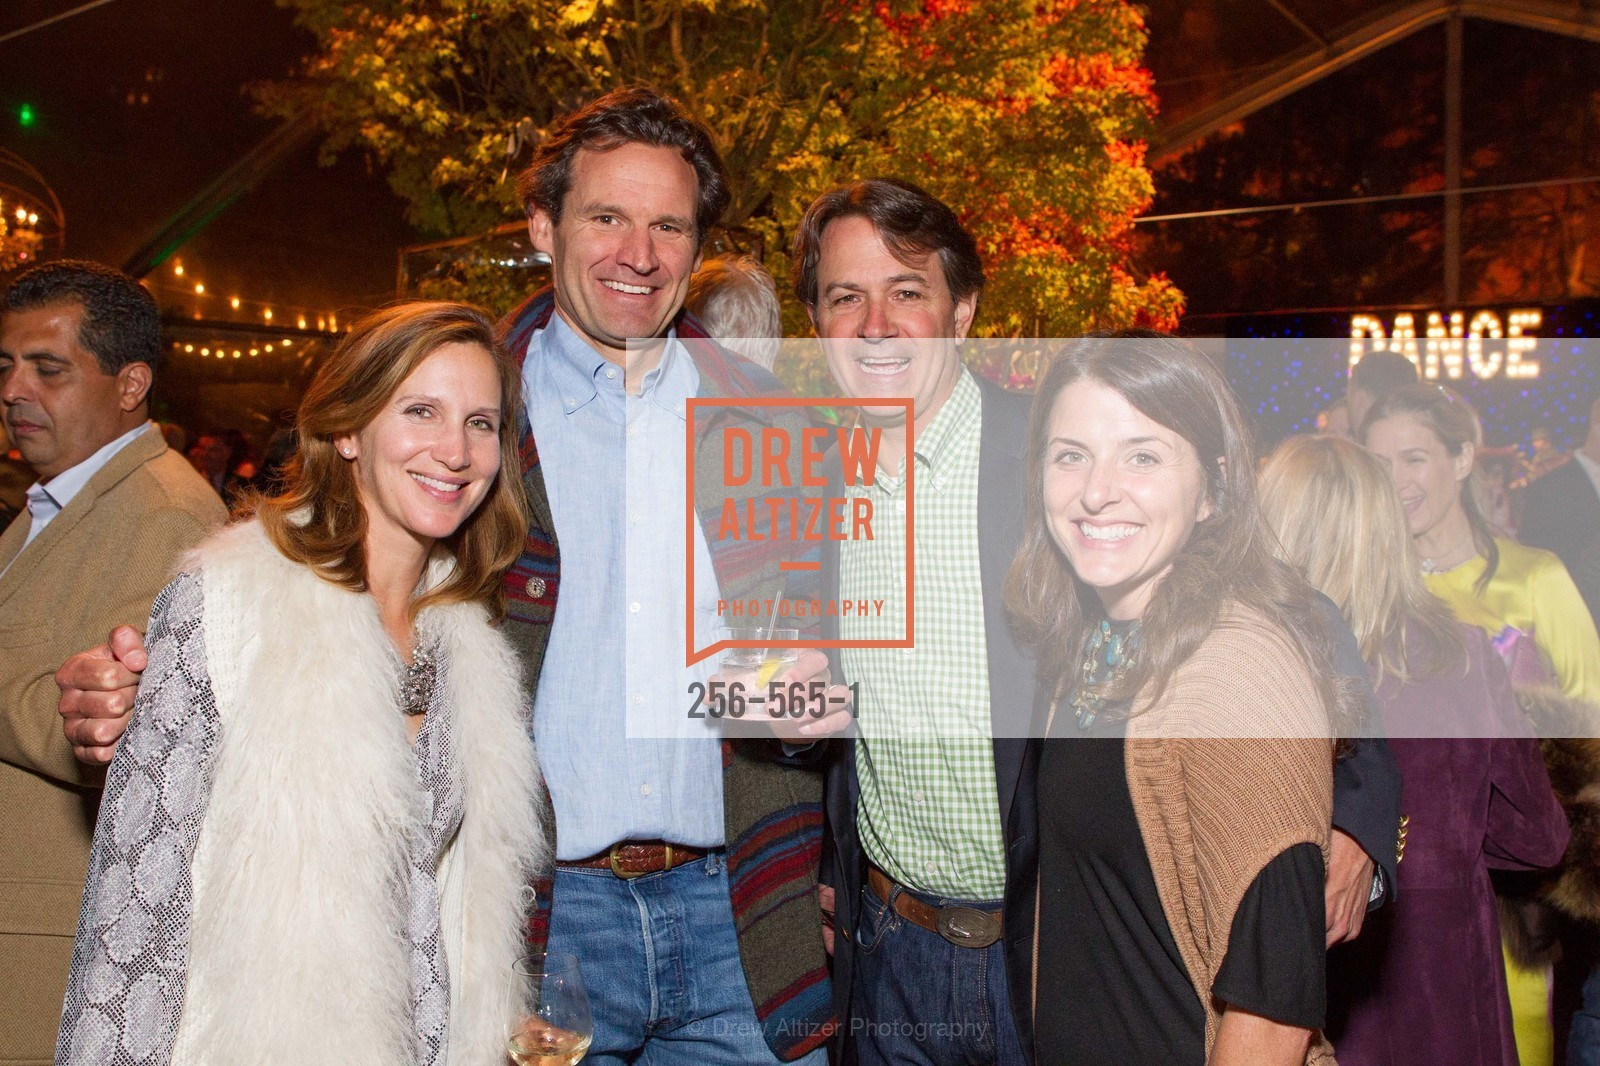 Jessica Kaludis, Jimmy Johnson, Kelly Harris, Heather Hahn Fowler, SAKS FIFTH AVENUE Hosts The GLAAD GALA Kick-Off Party, US, September 12th, 2014,Drew Altizer, Drew Altizer Photography, full-service agency, private events, San Francisco photographer, photographer california